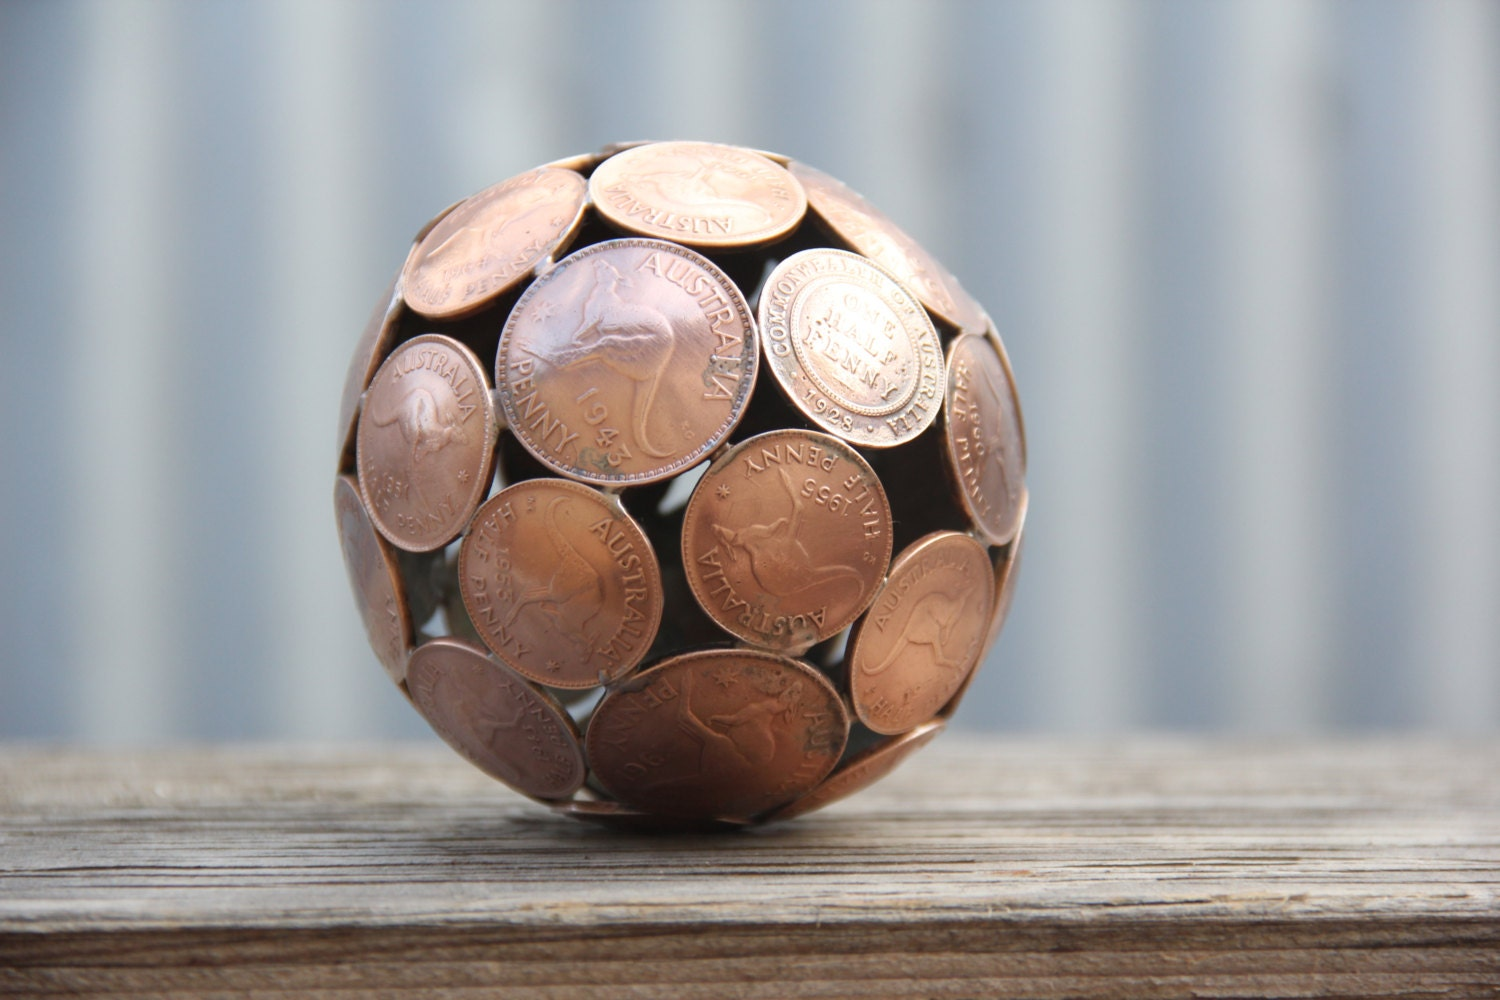 Pierogi christmas ornament - Mini Mixed Penny Ball Polished 8 5 Cm Penny Sphere Metal Sculpture Ornament